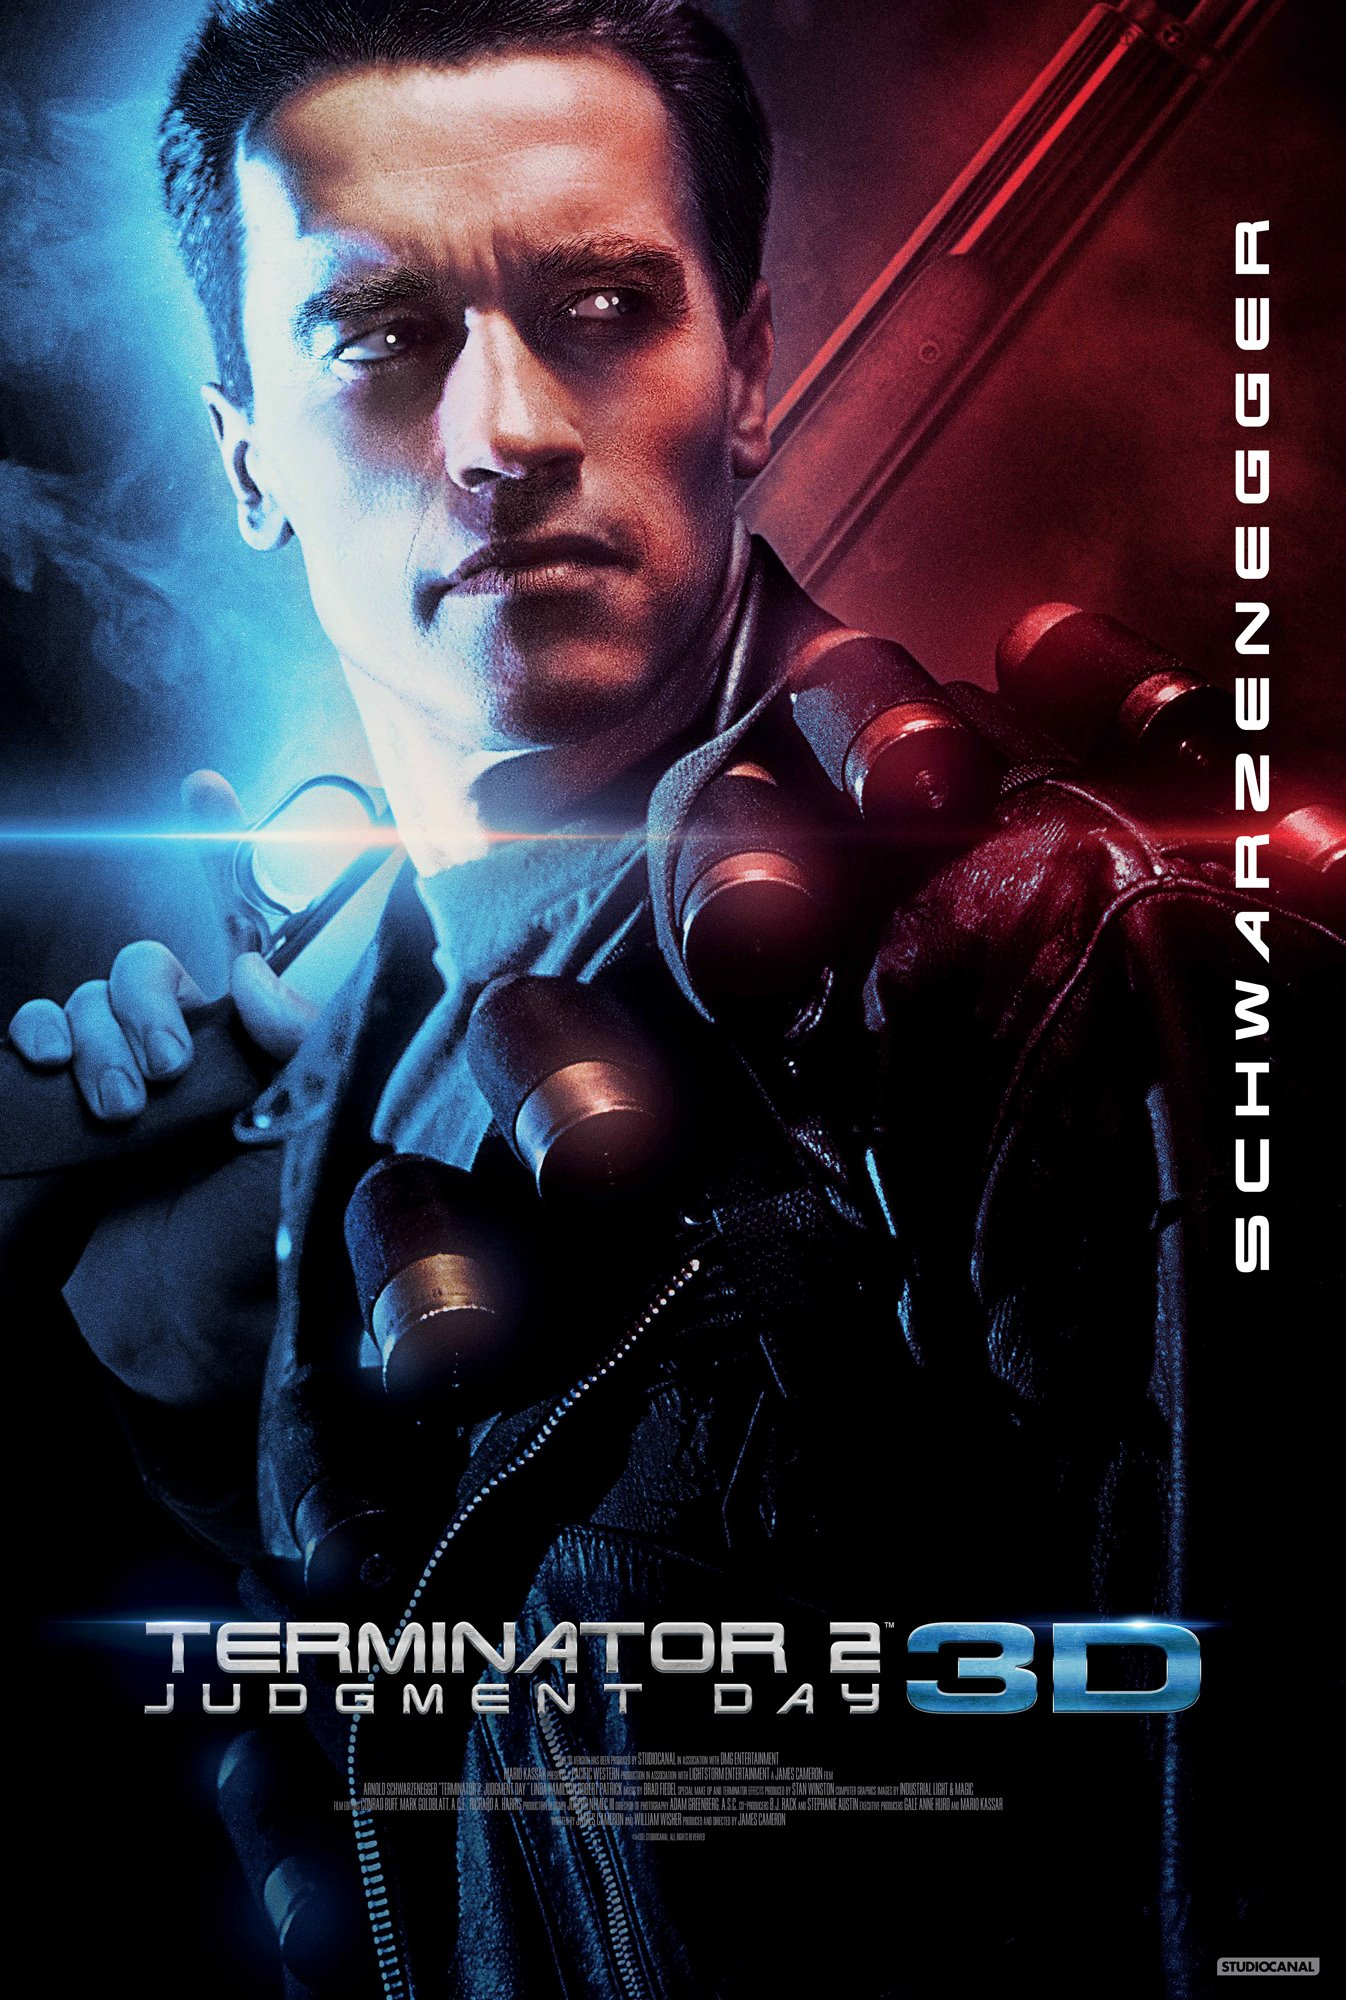 terminator-2-in-3d-terminator-2-judgement-day-3d-poster